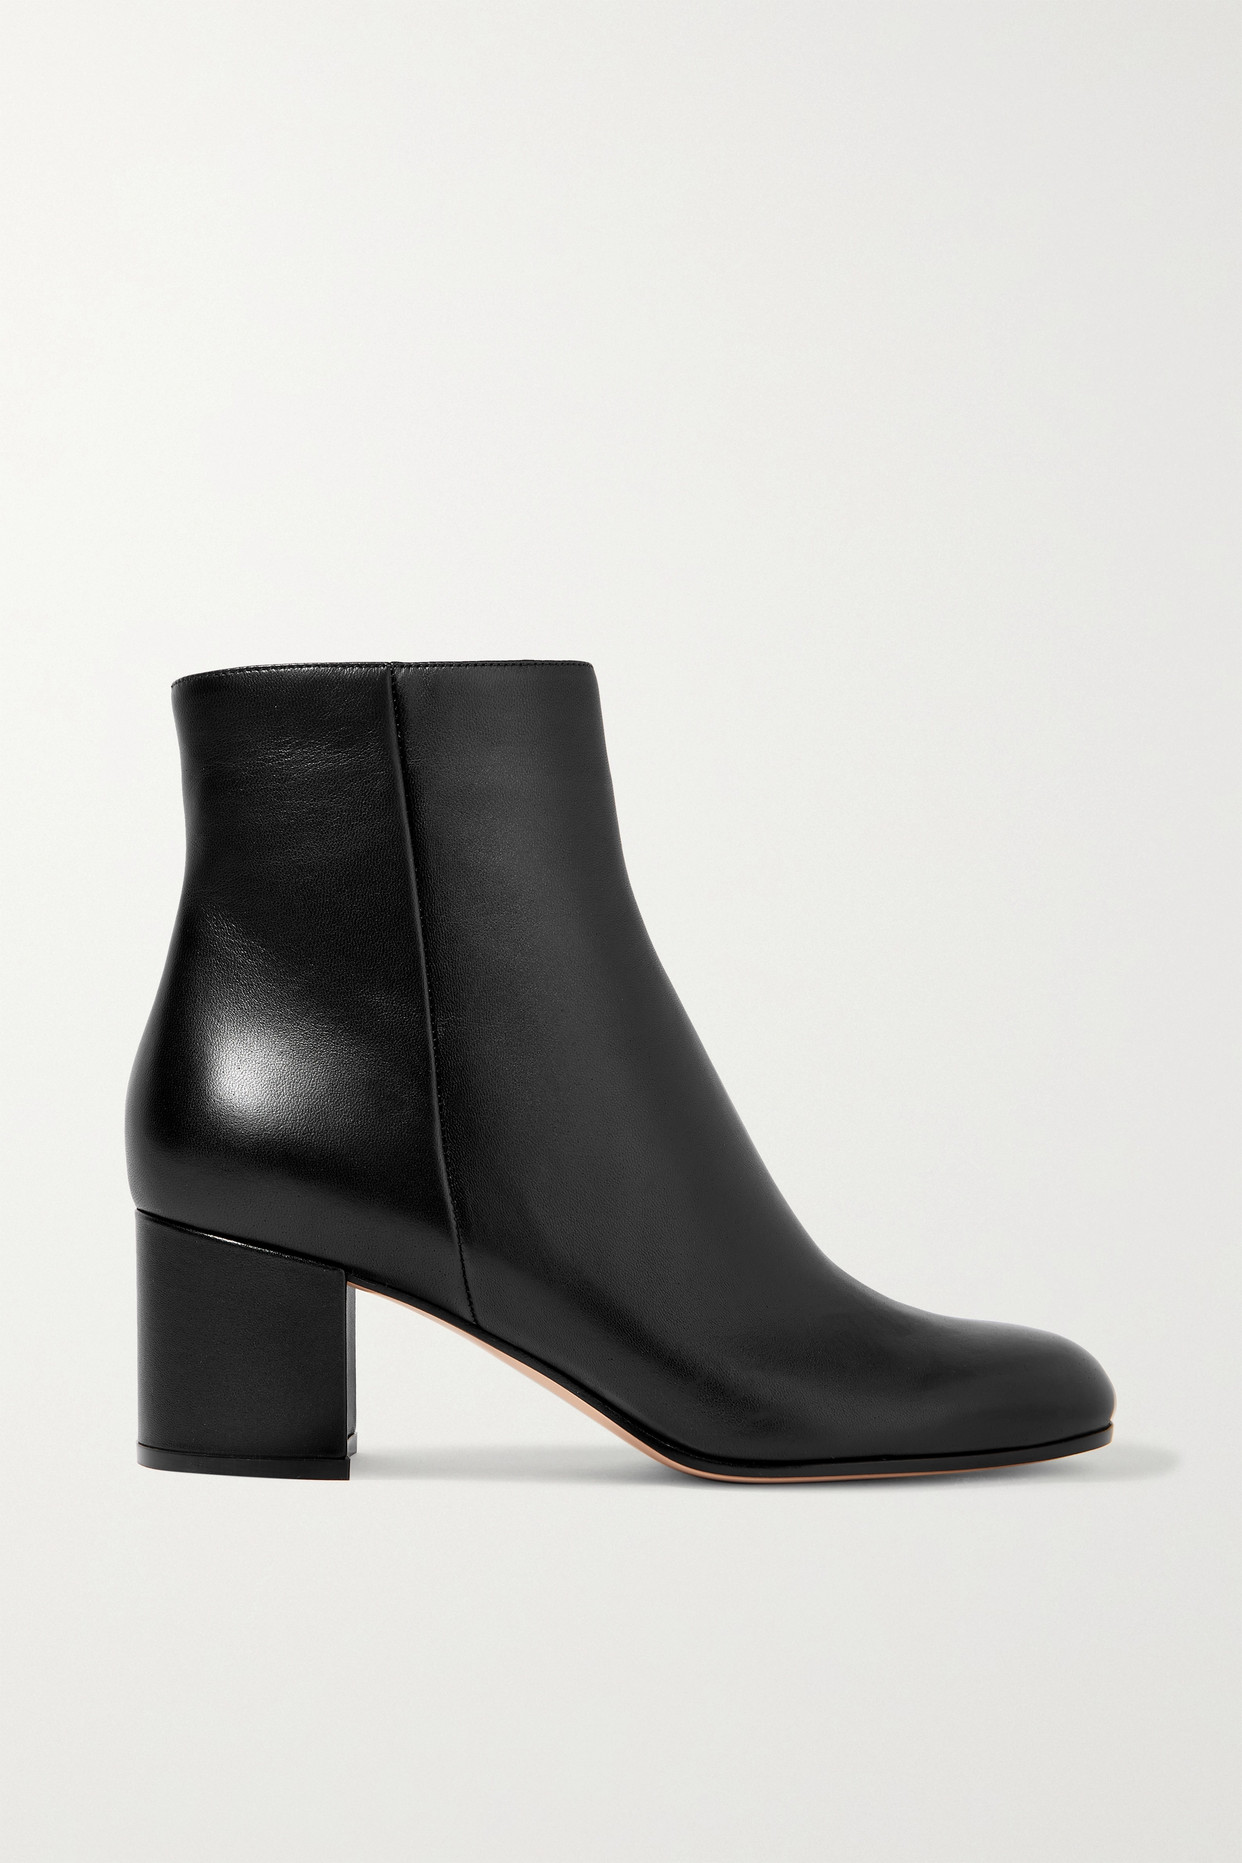 GIANVITO ROSSI - Margaux 60 Leather Ankle Boots - Black - IT36